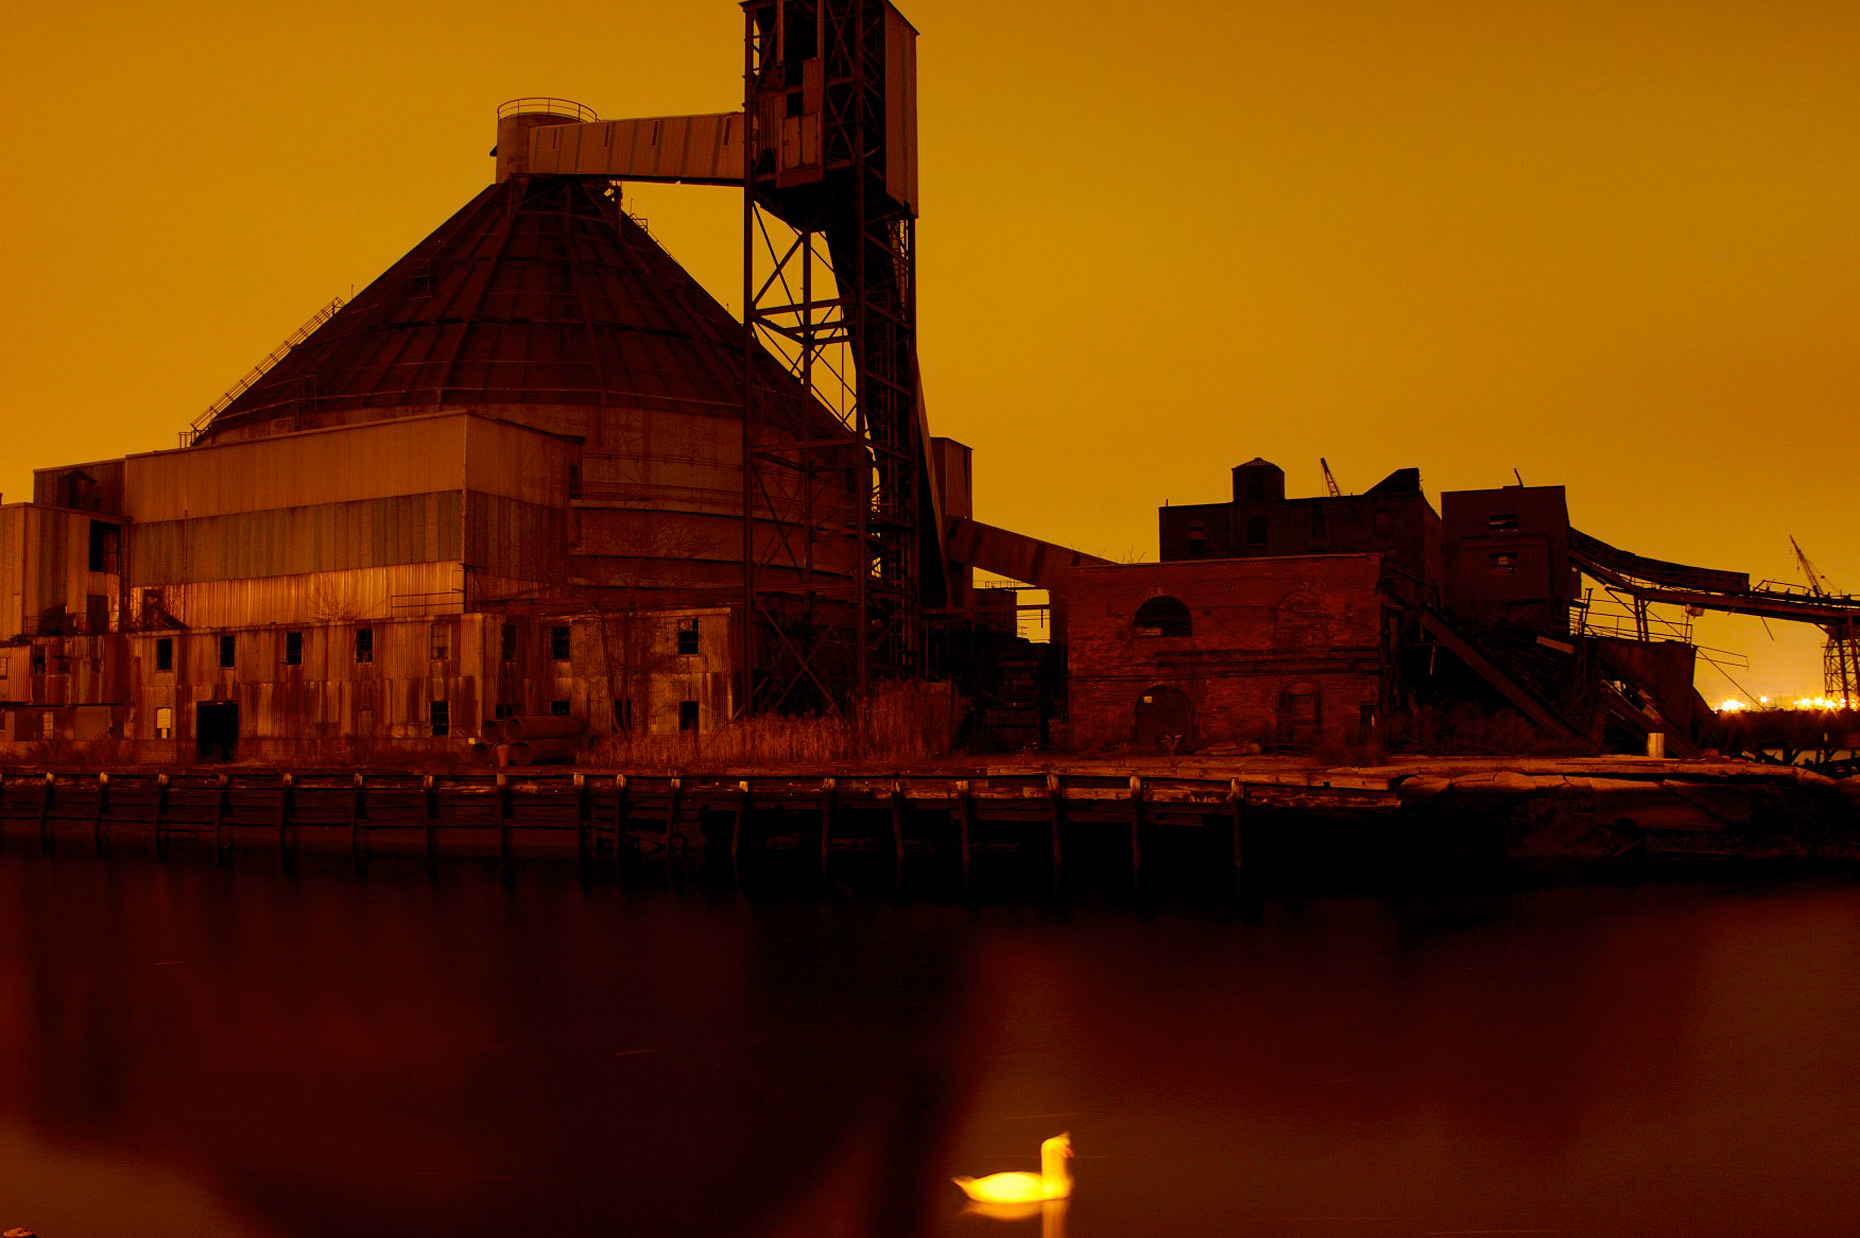 sugar-refinery-at-night-in red hook with a swan.jpg